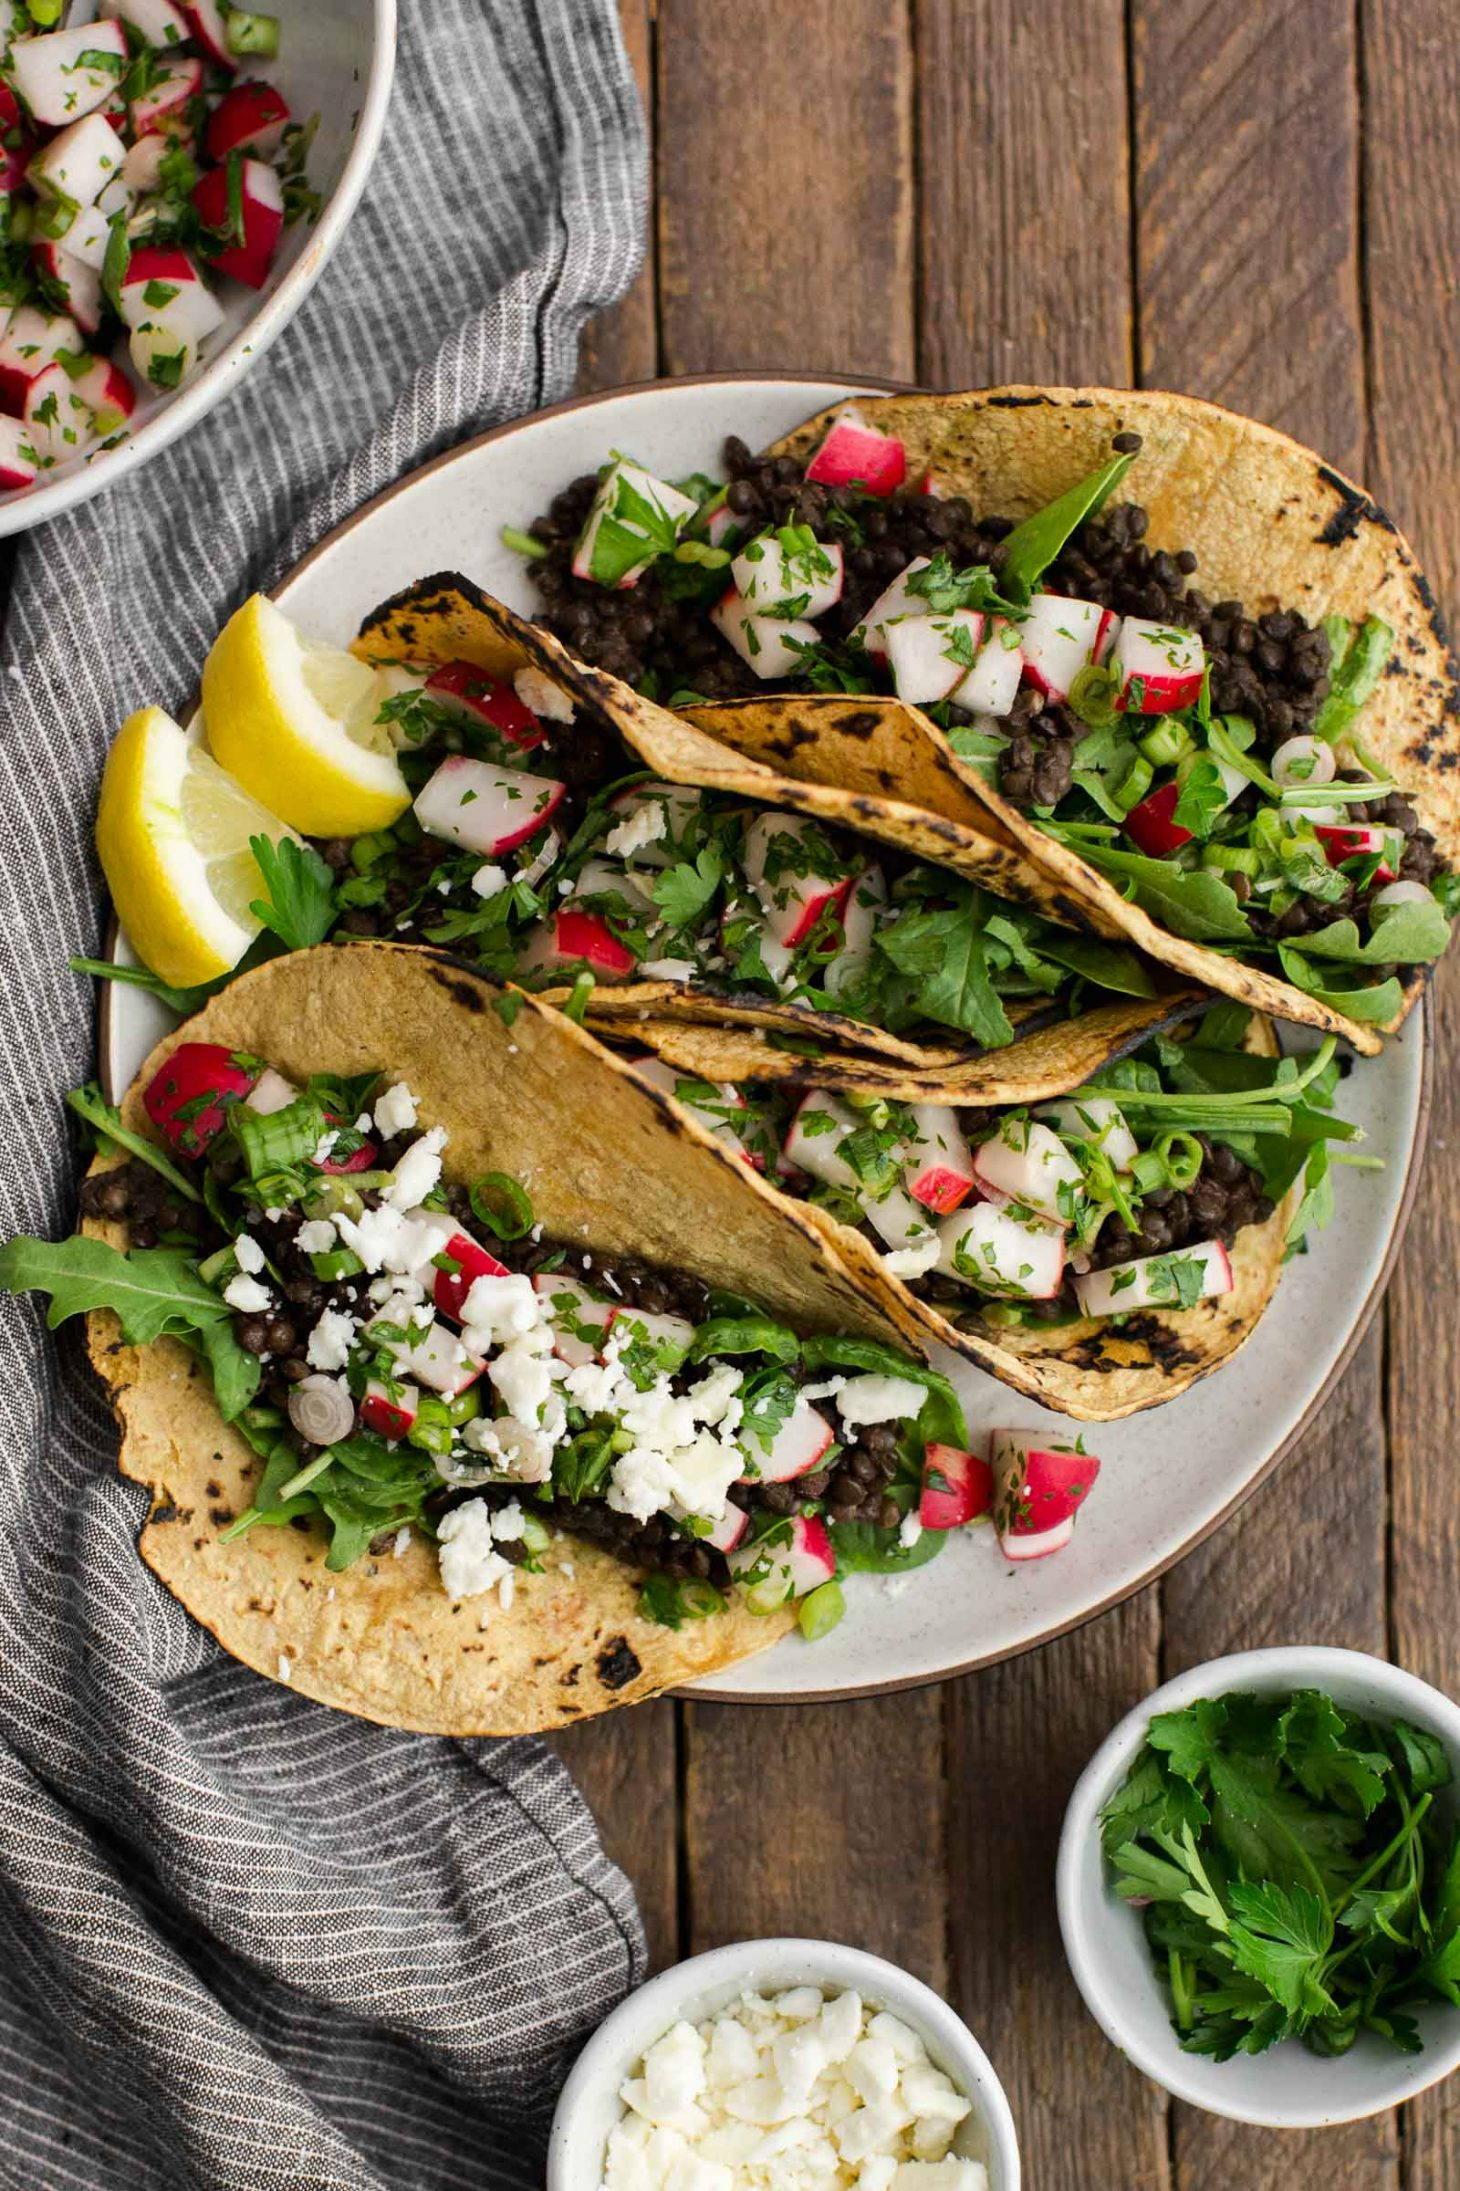 Spicy Lentil Tacos with Radish Salsa | Naturally Ella